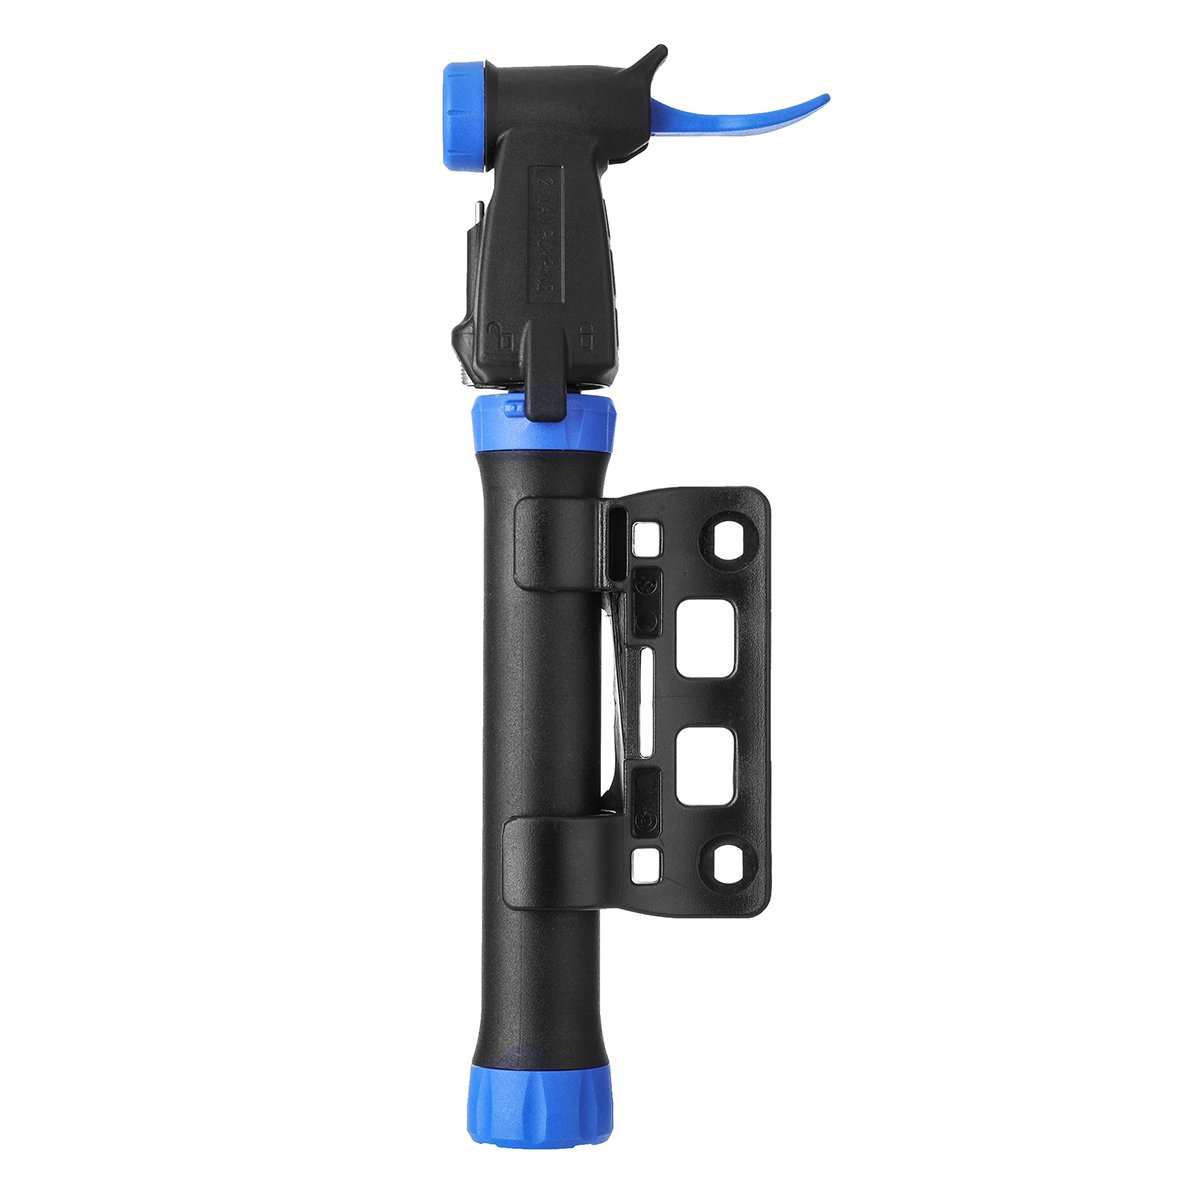 Stroke Bike Pump Hybrid /& BMX Bike Portable Light Weight Cycle Pump, Mini Bicycle Hand Pump Compatible with Presta /& Schrader Valve /& Sports Ball for Mountain Road OUTERDO Mini Two